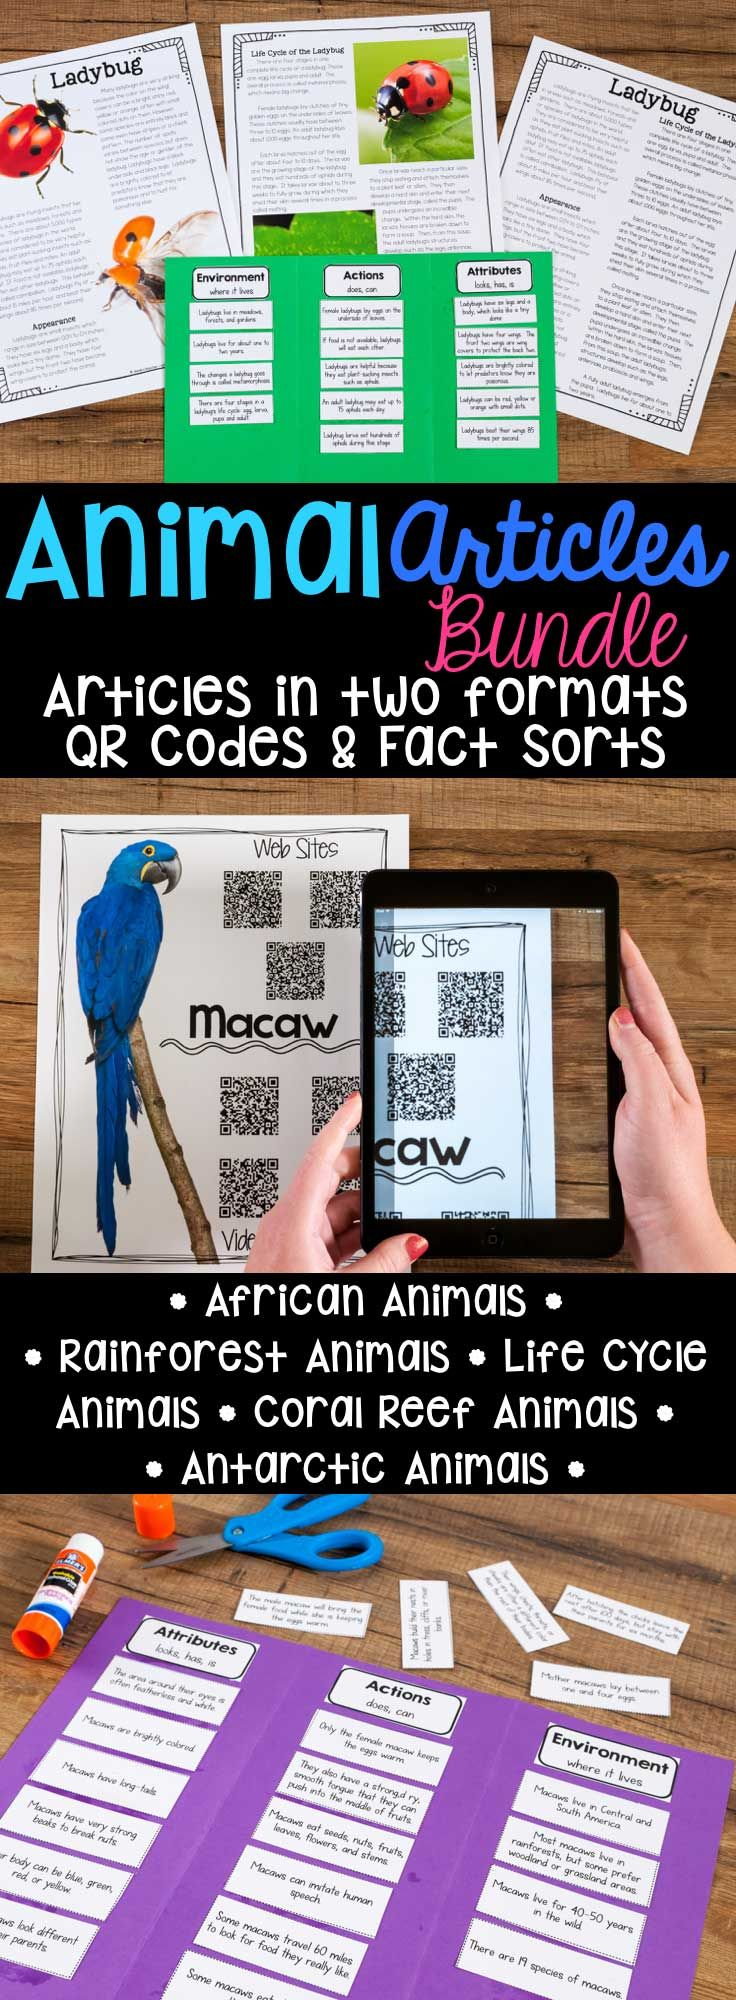 Animal Articles: Informational Article, QR Code Research Page & Fact Sort is a bundle of  informational articles all about Animals. These articles are full of interesting facts and details that students can use during reading and writing activities. Includes an article about each animal in two formats (two-page color photos & one-page text), QR Codes for online articles and videos about the animal and a fact sort sheet where students can sort facts about each animal's attributes…